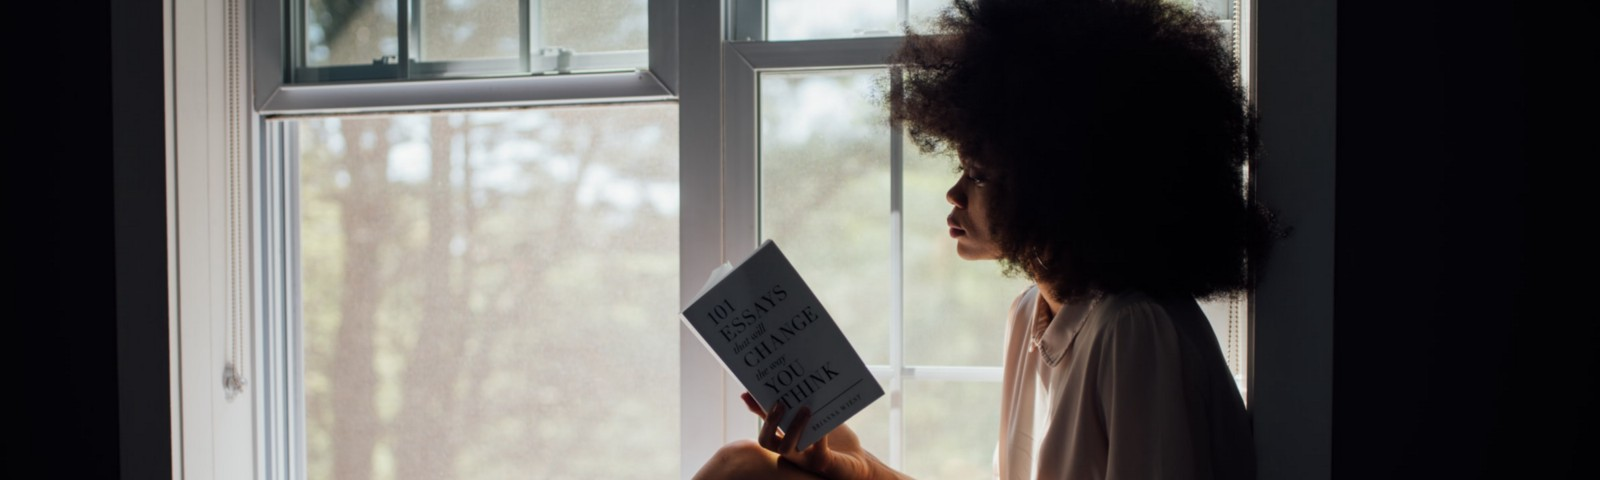 A girl reading a book by the window.